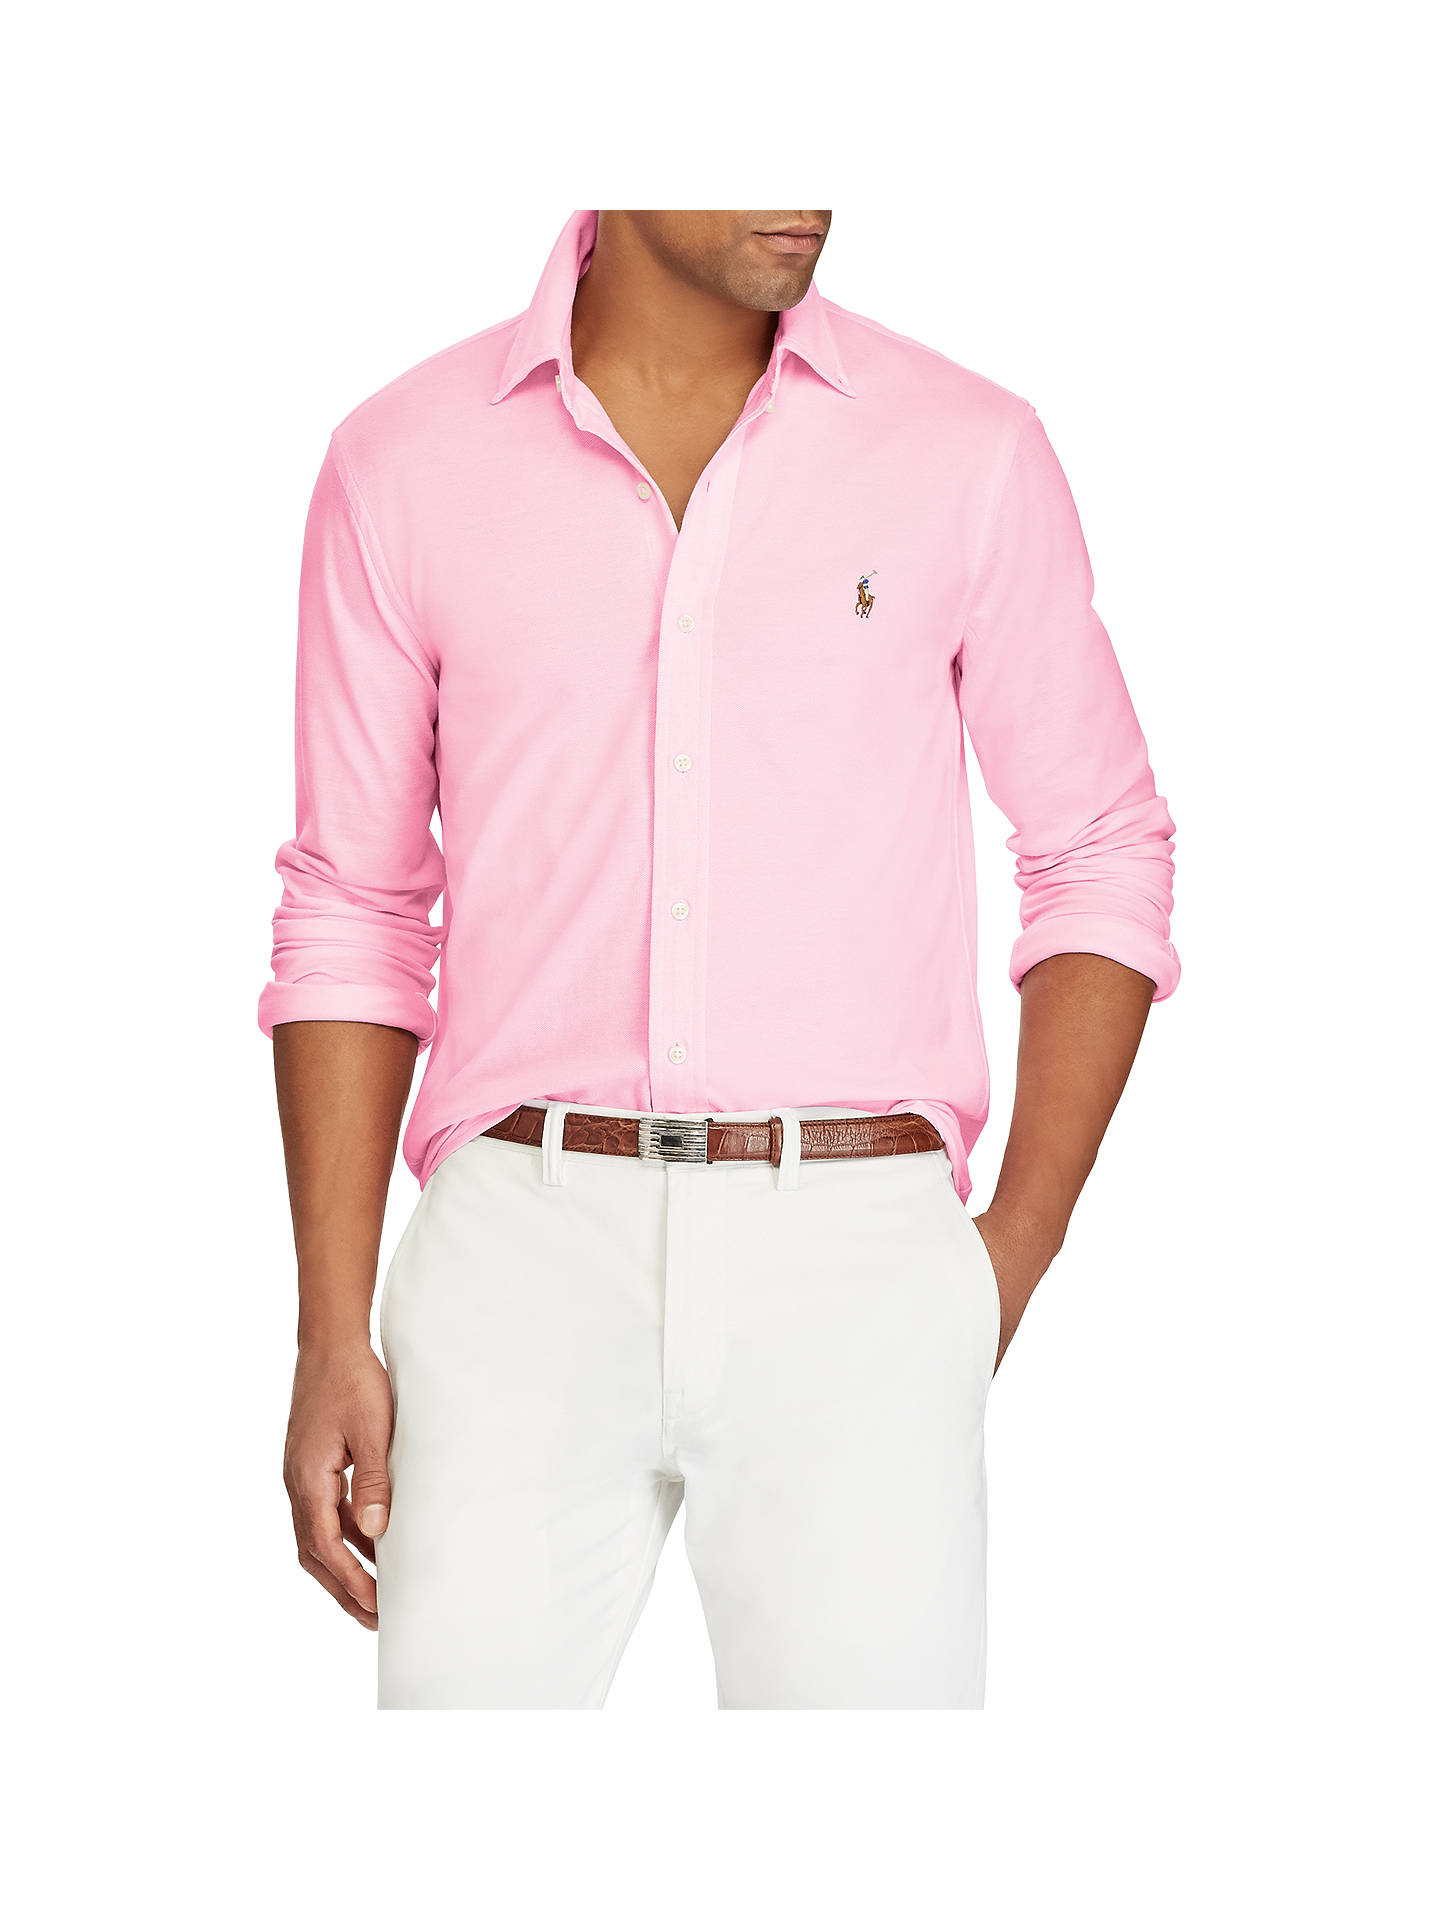 BuyPolo Ralph Lauren Custom Fit Oxford Shirt, Carmel Pink White, S Online  at ... d76152f516e2